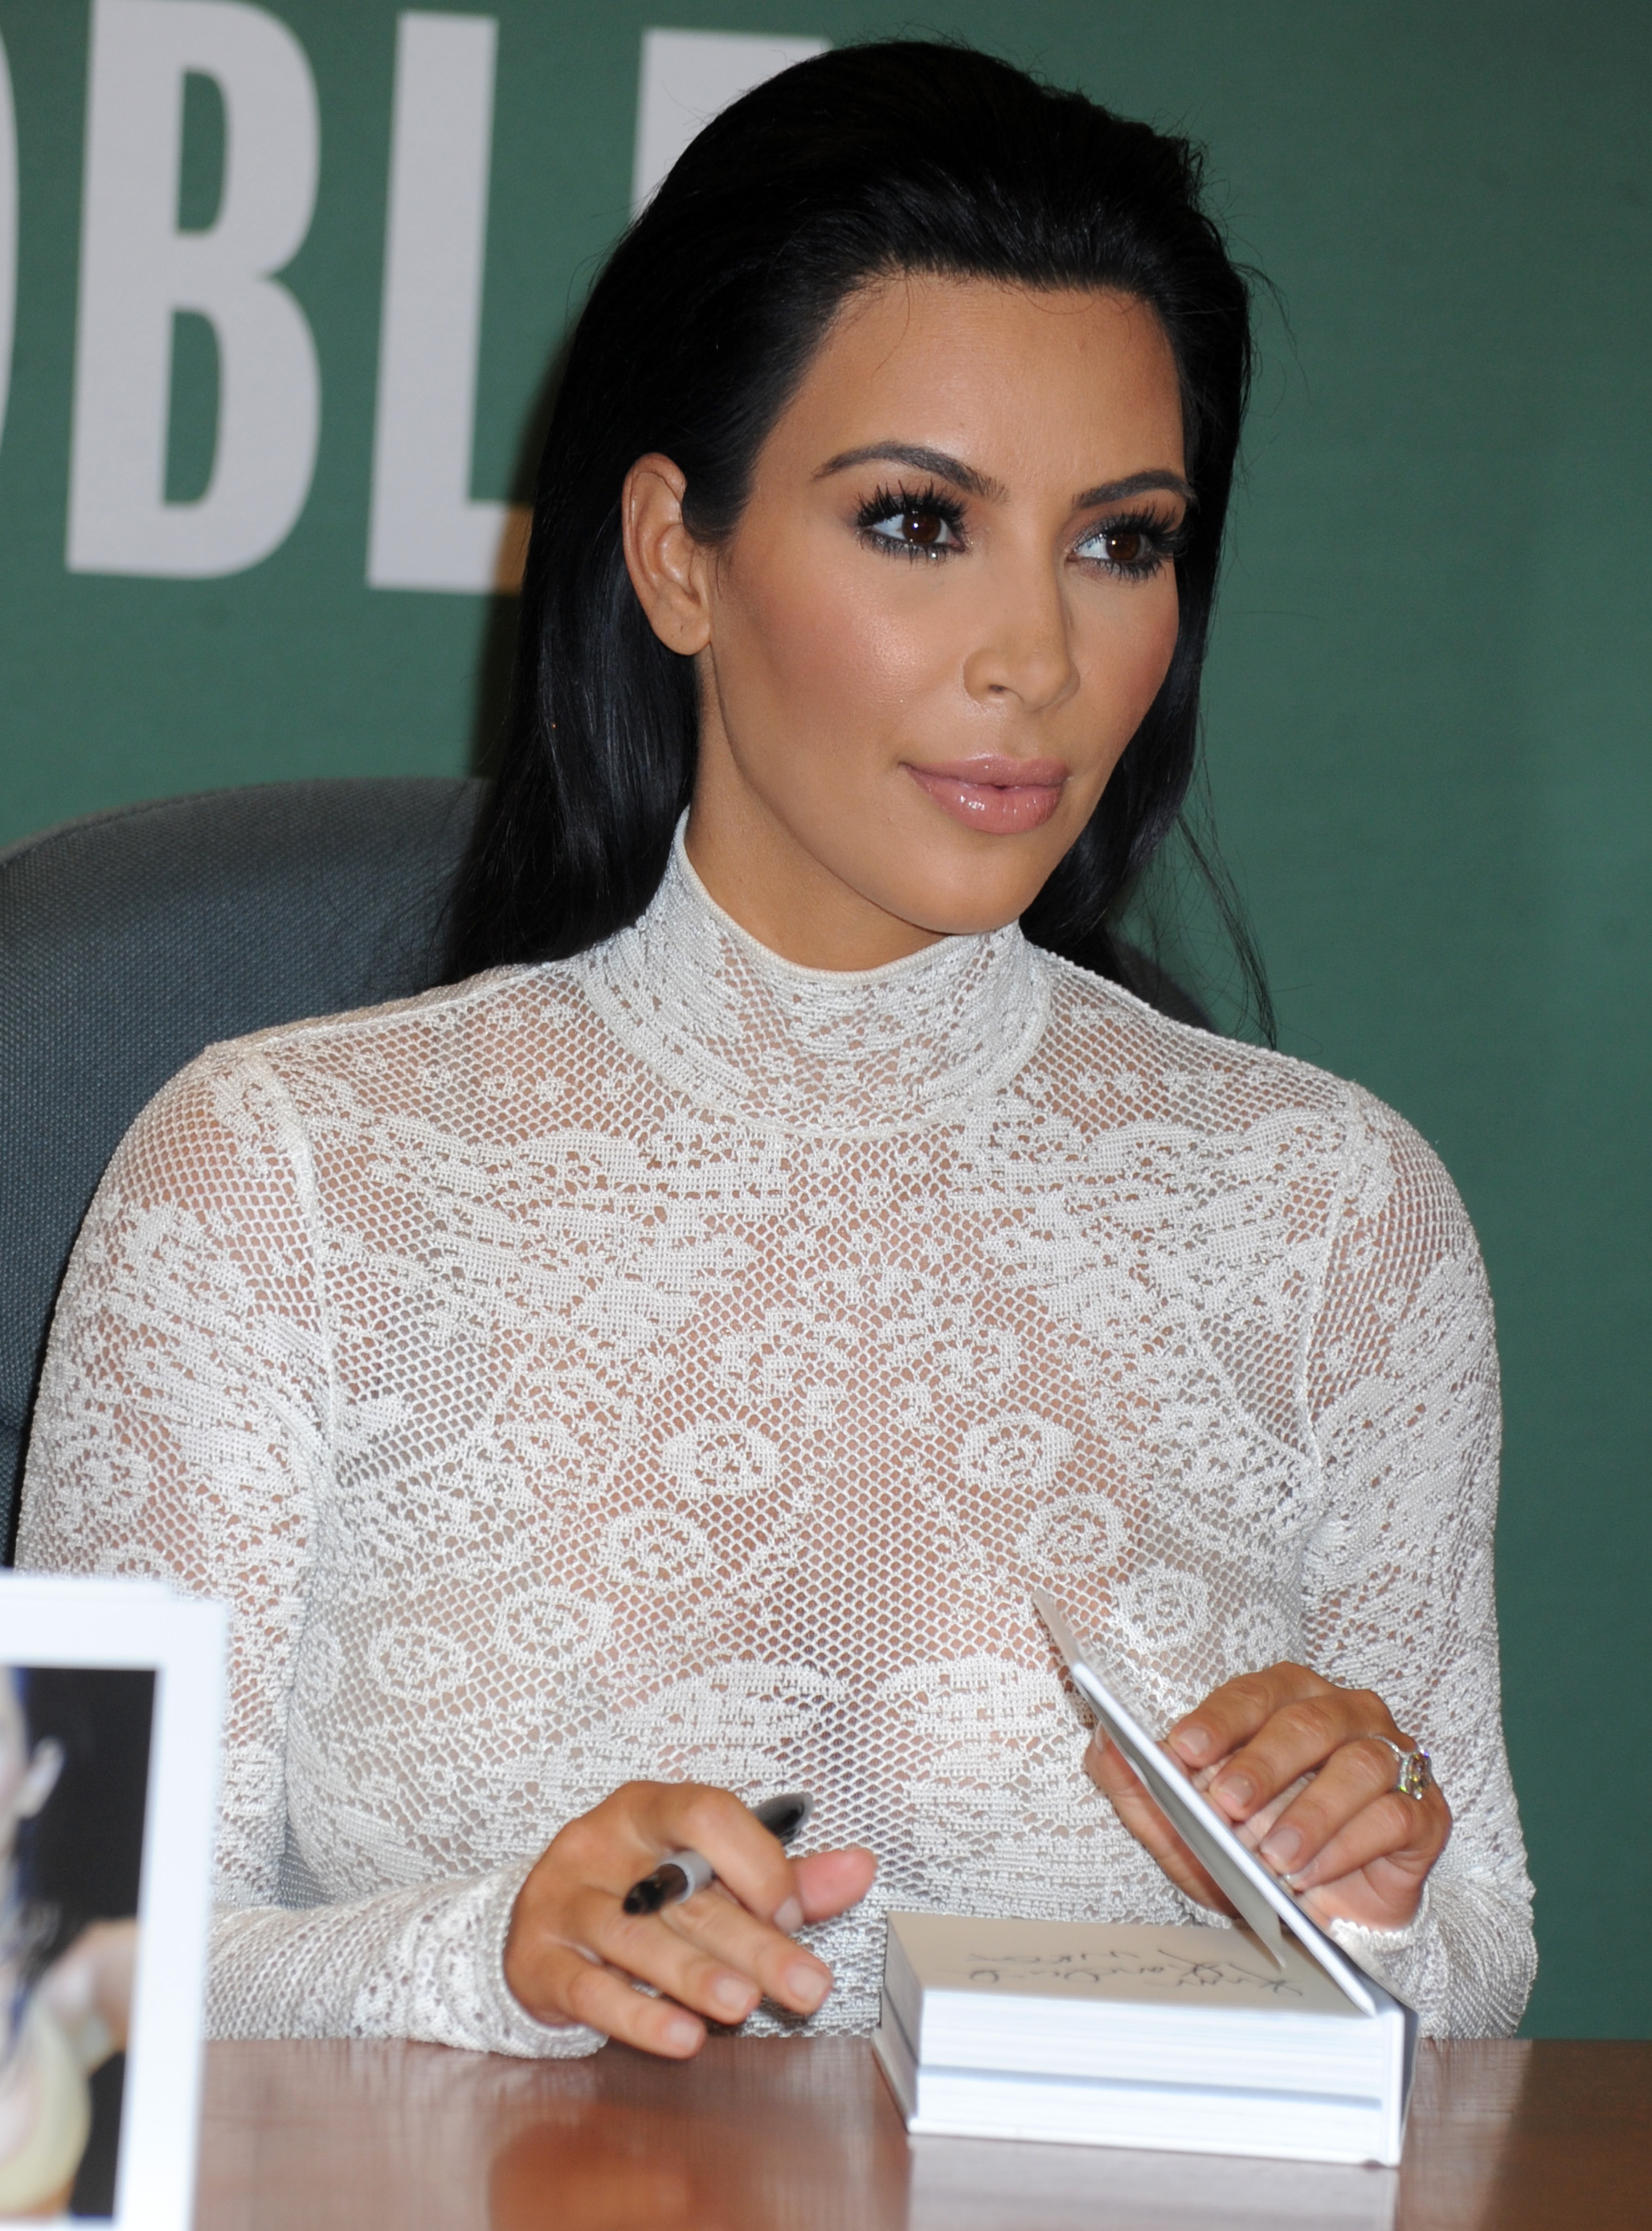 Kim Kardashian signs copies cf 'Selfish'